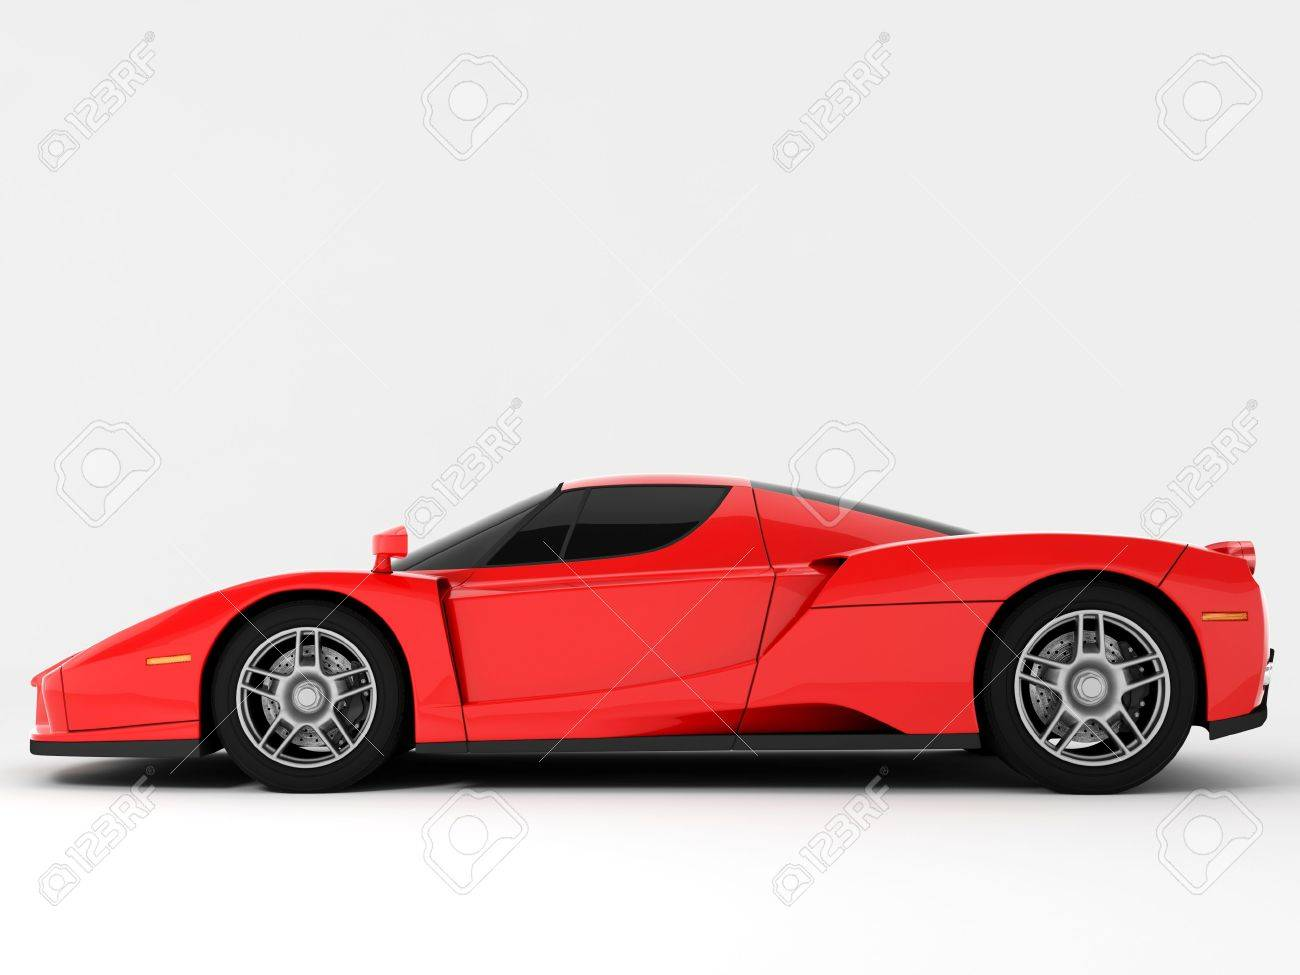 Red Super Car Stock Photo - 6014282